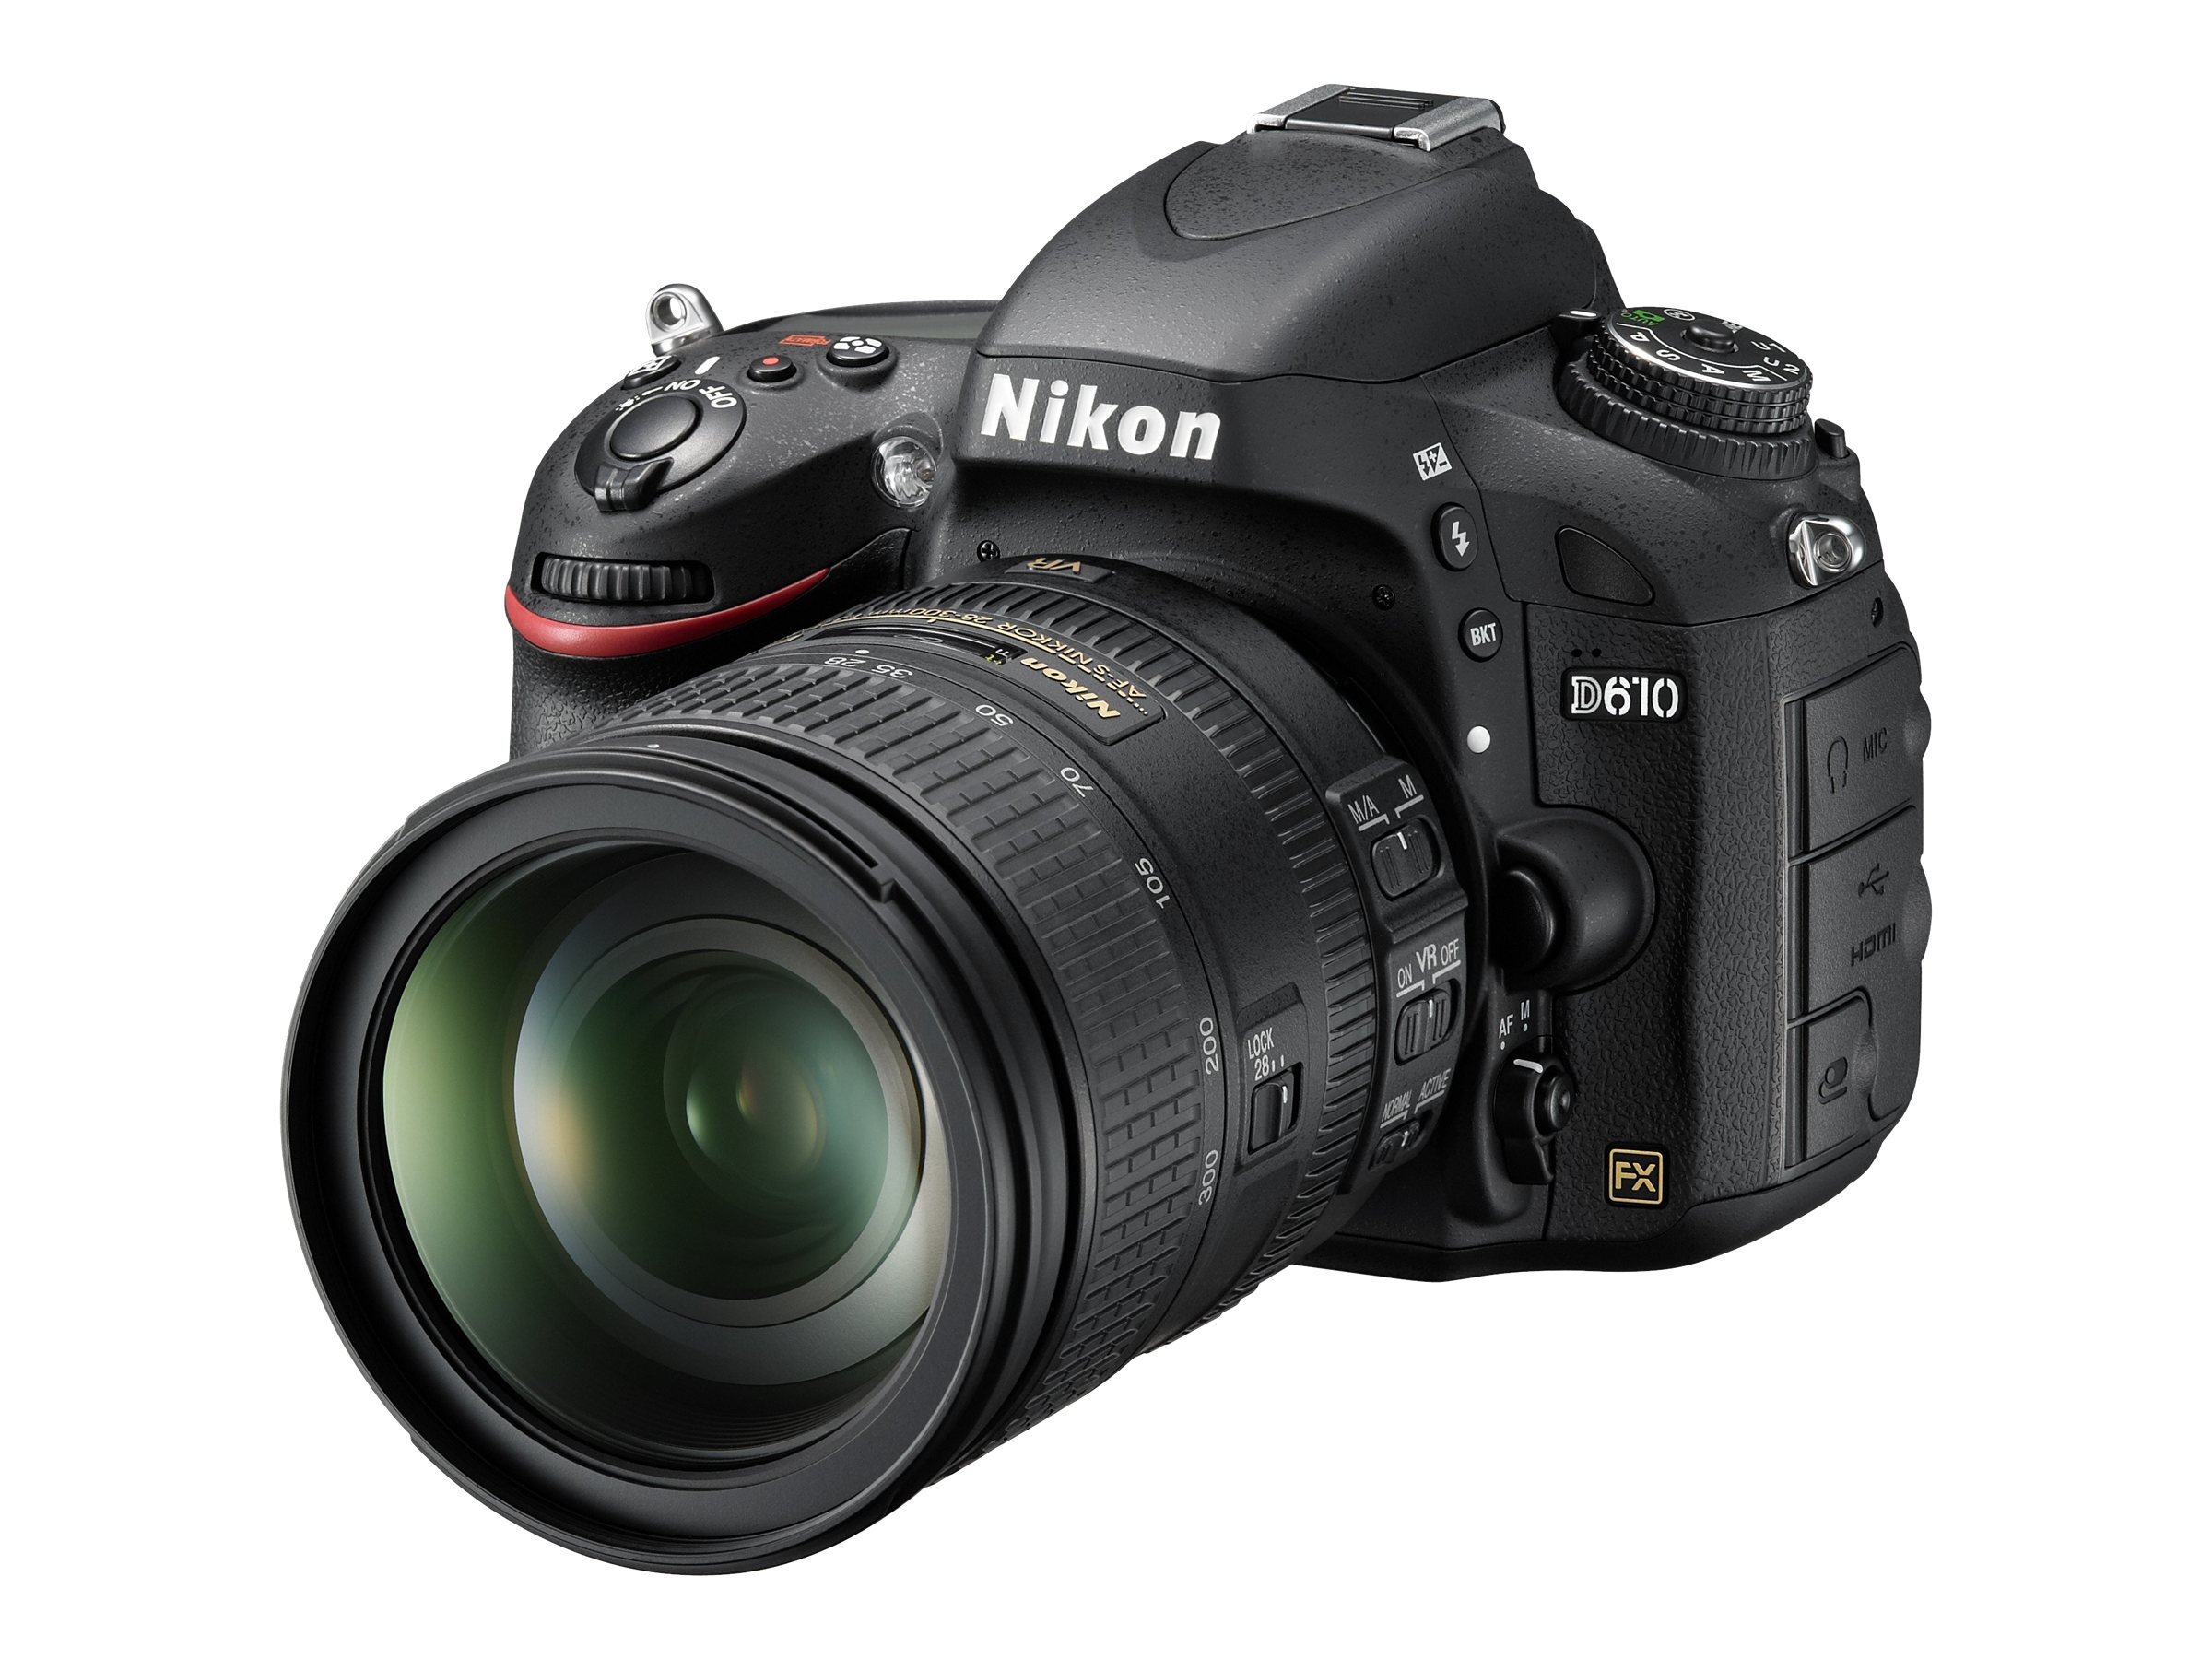 Nikon D610 FX-Format Digital SLR with 28-300mm VR Lens, 13304